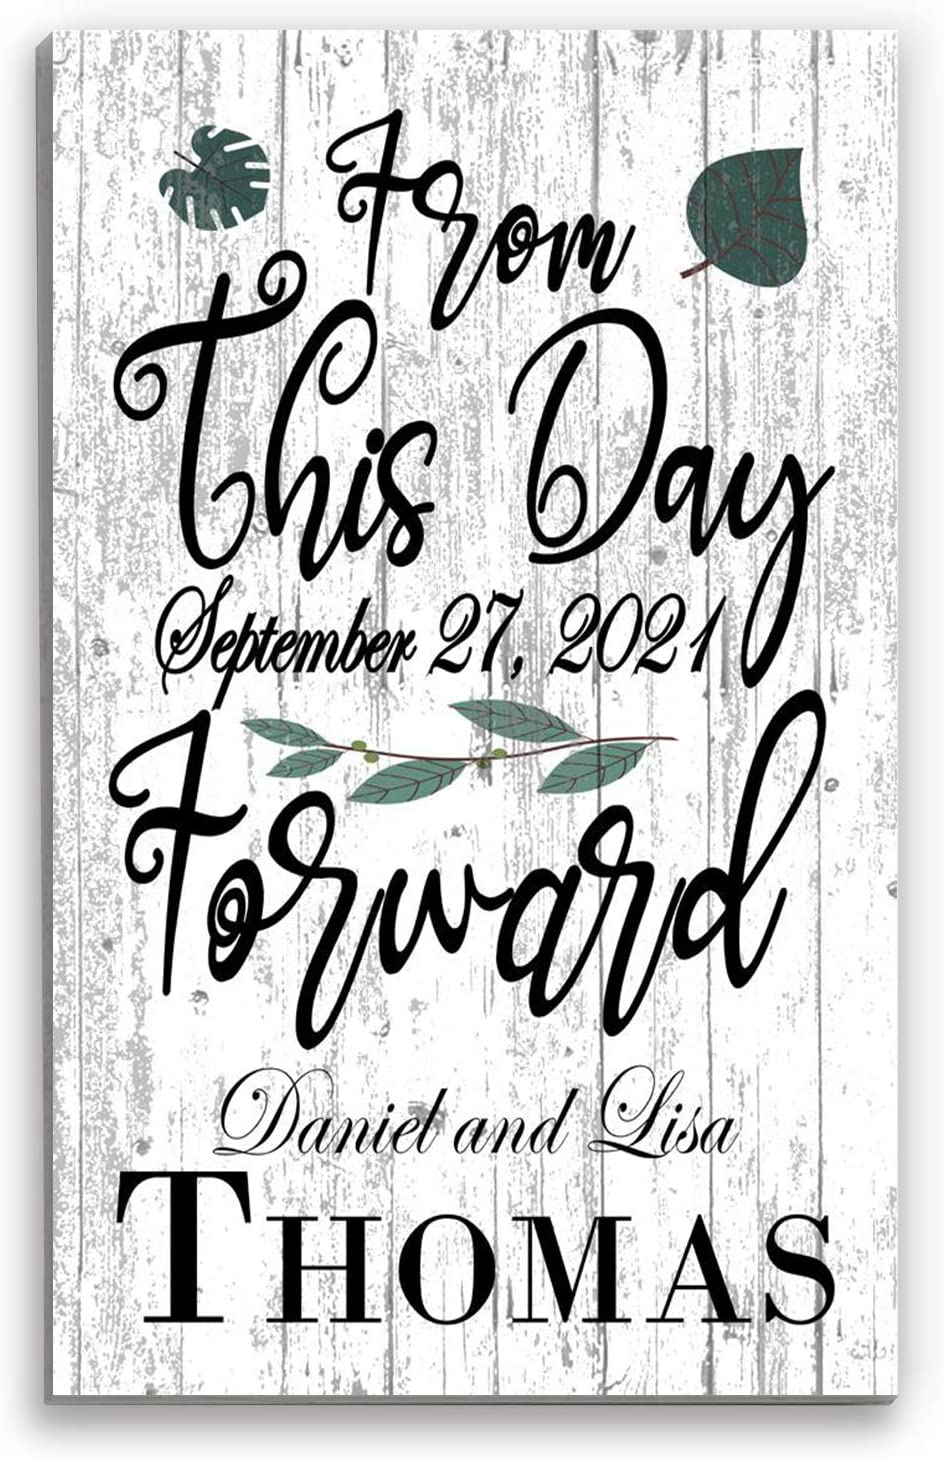 Broad Bay Personalized Wedding Gift Name Sign Custom New Married Couple Family Established Date Home Decor Art- from This Day Forward - Decoration Customized for Newlyweds EST.